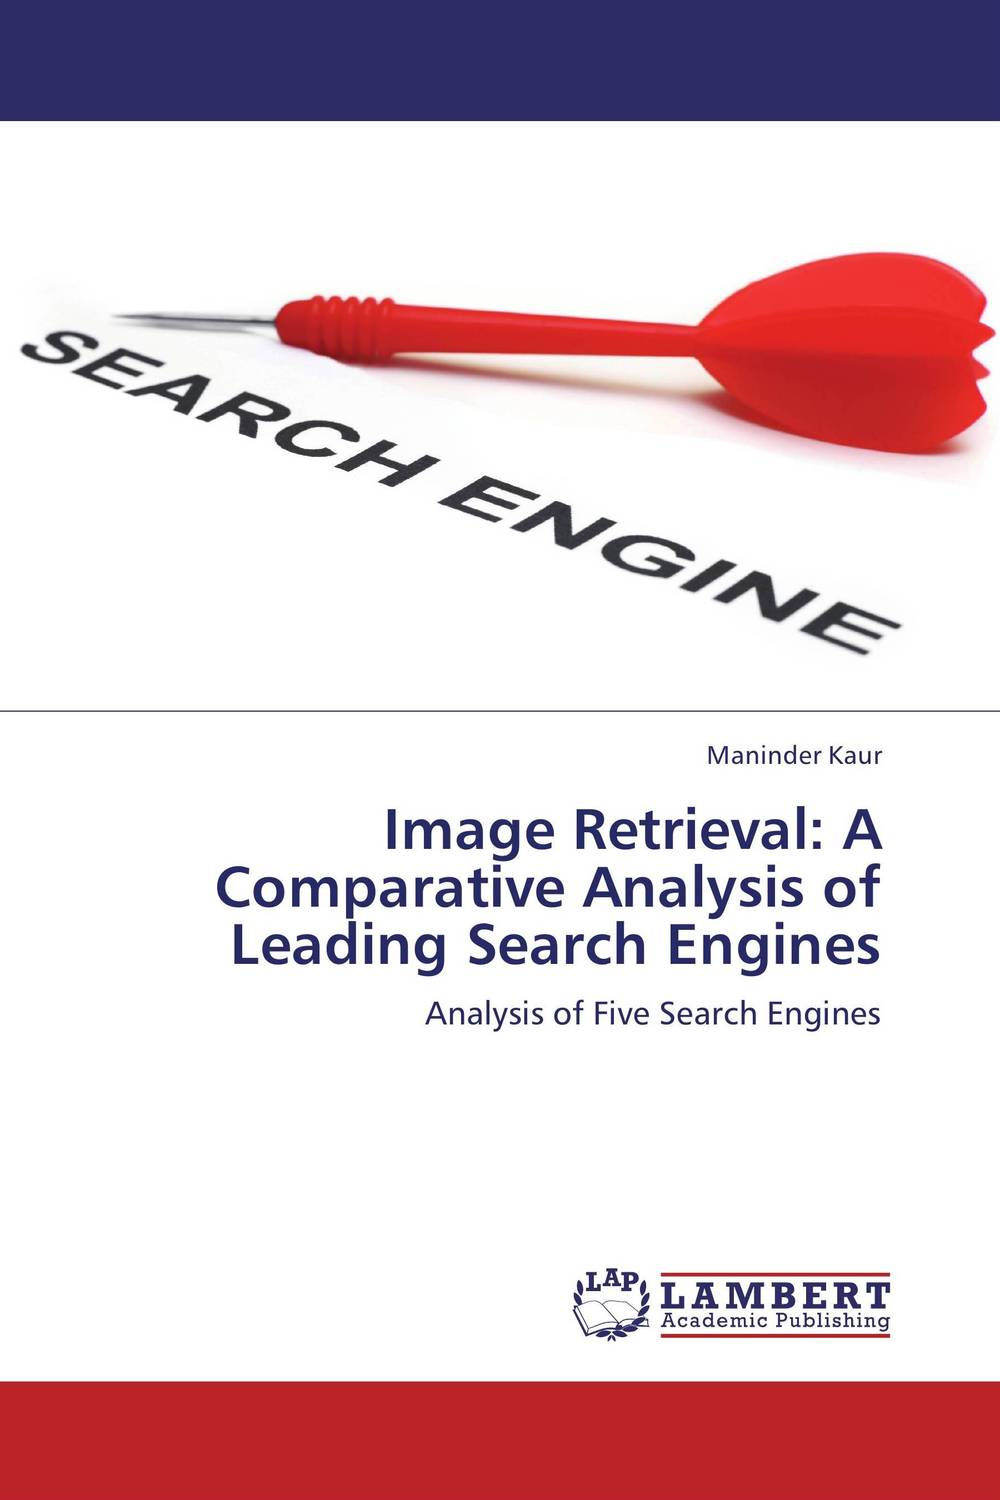 Image Retrieval: A Comparative Analysis of Leading Search Engines paramotor hand throttle suitable for various paramotor engines